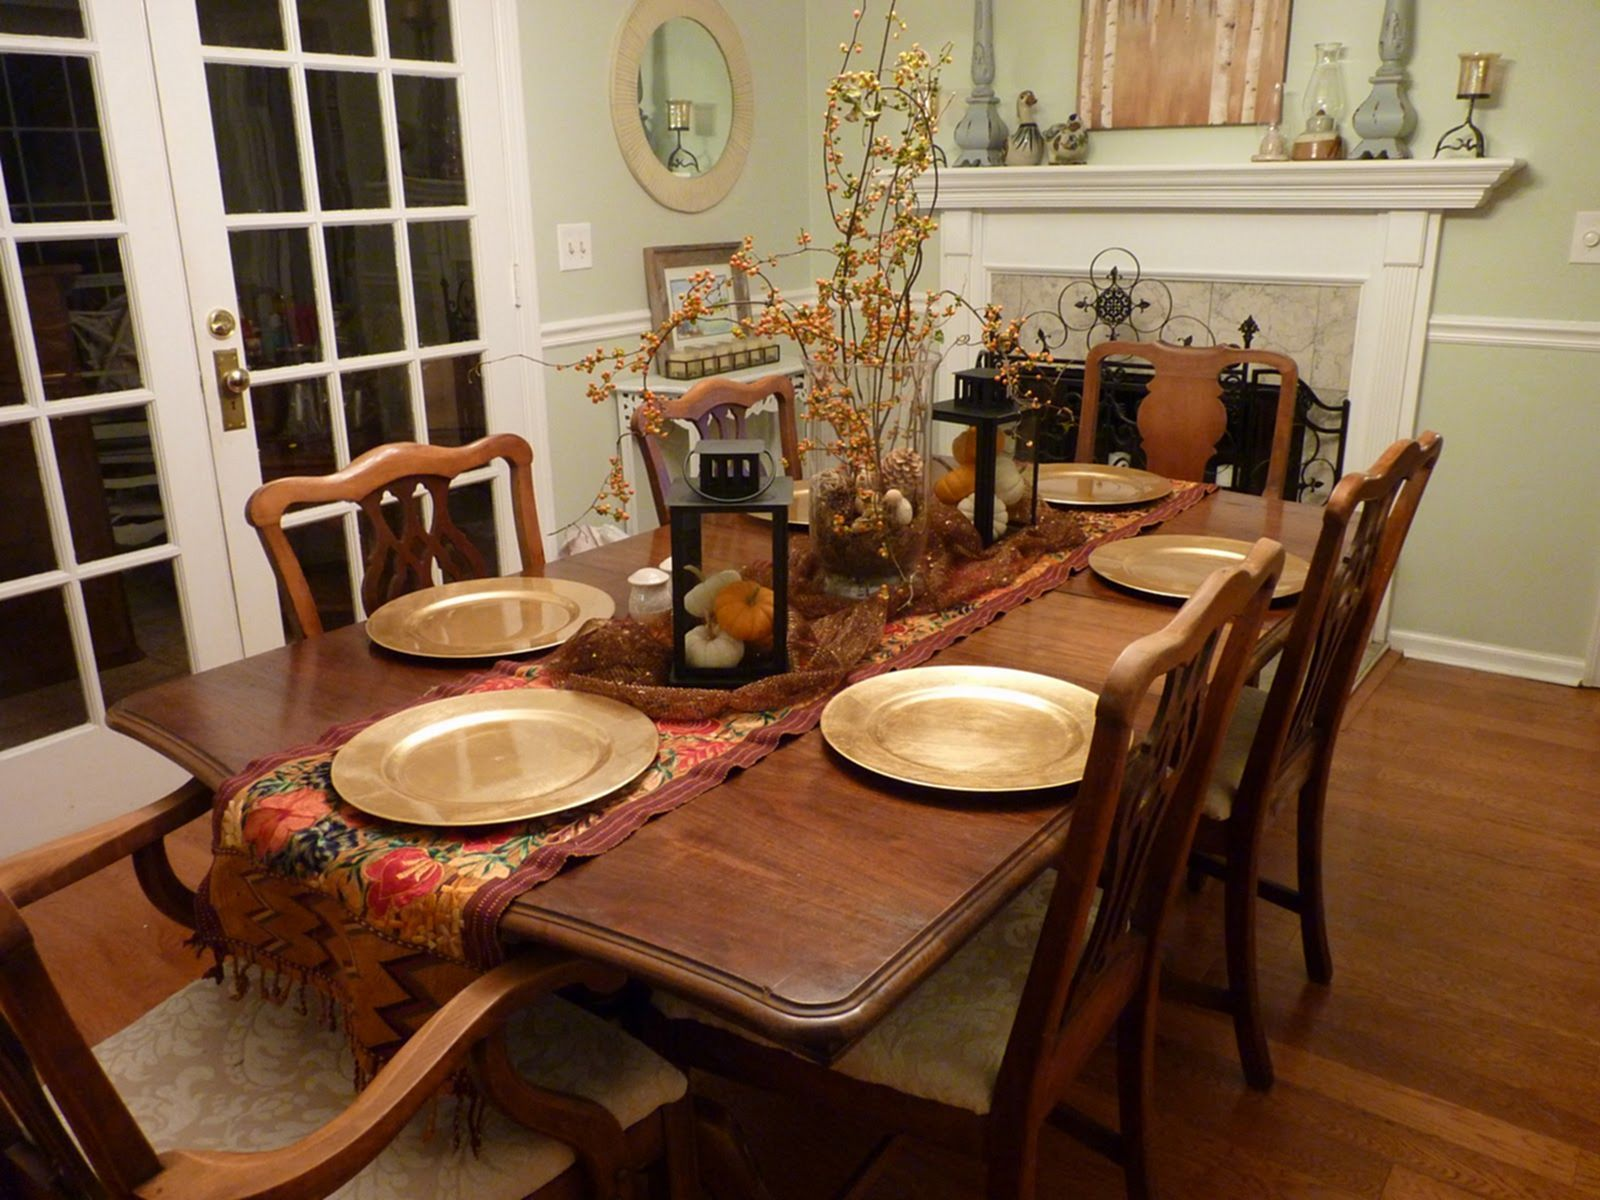 20 Thanksgiving Kitchen Decor Ideas For Your Inspiration Rustic Dining Room Table Dining Room Table Decor Dining Room Table Centerpieces